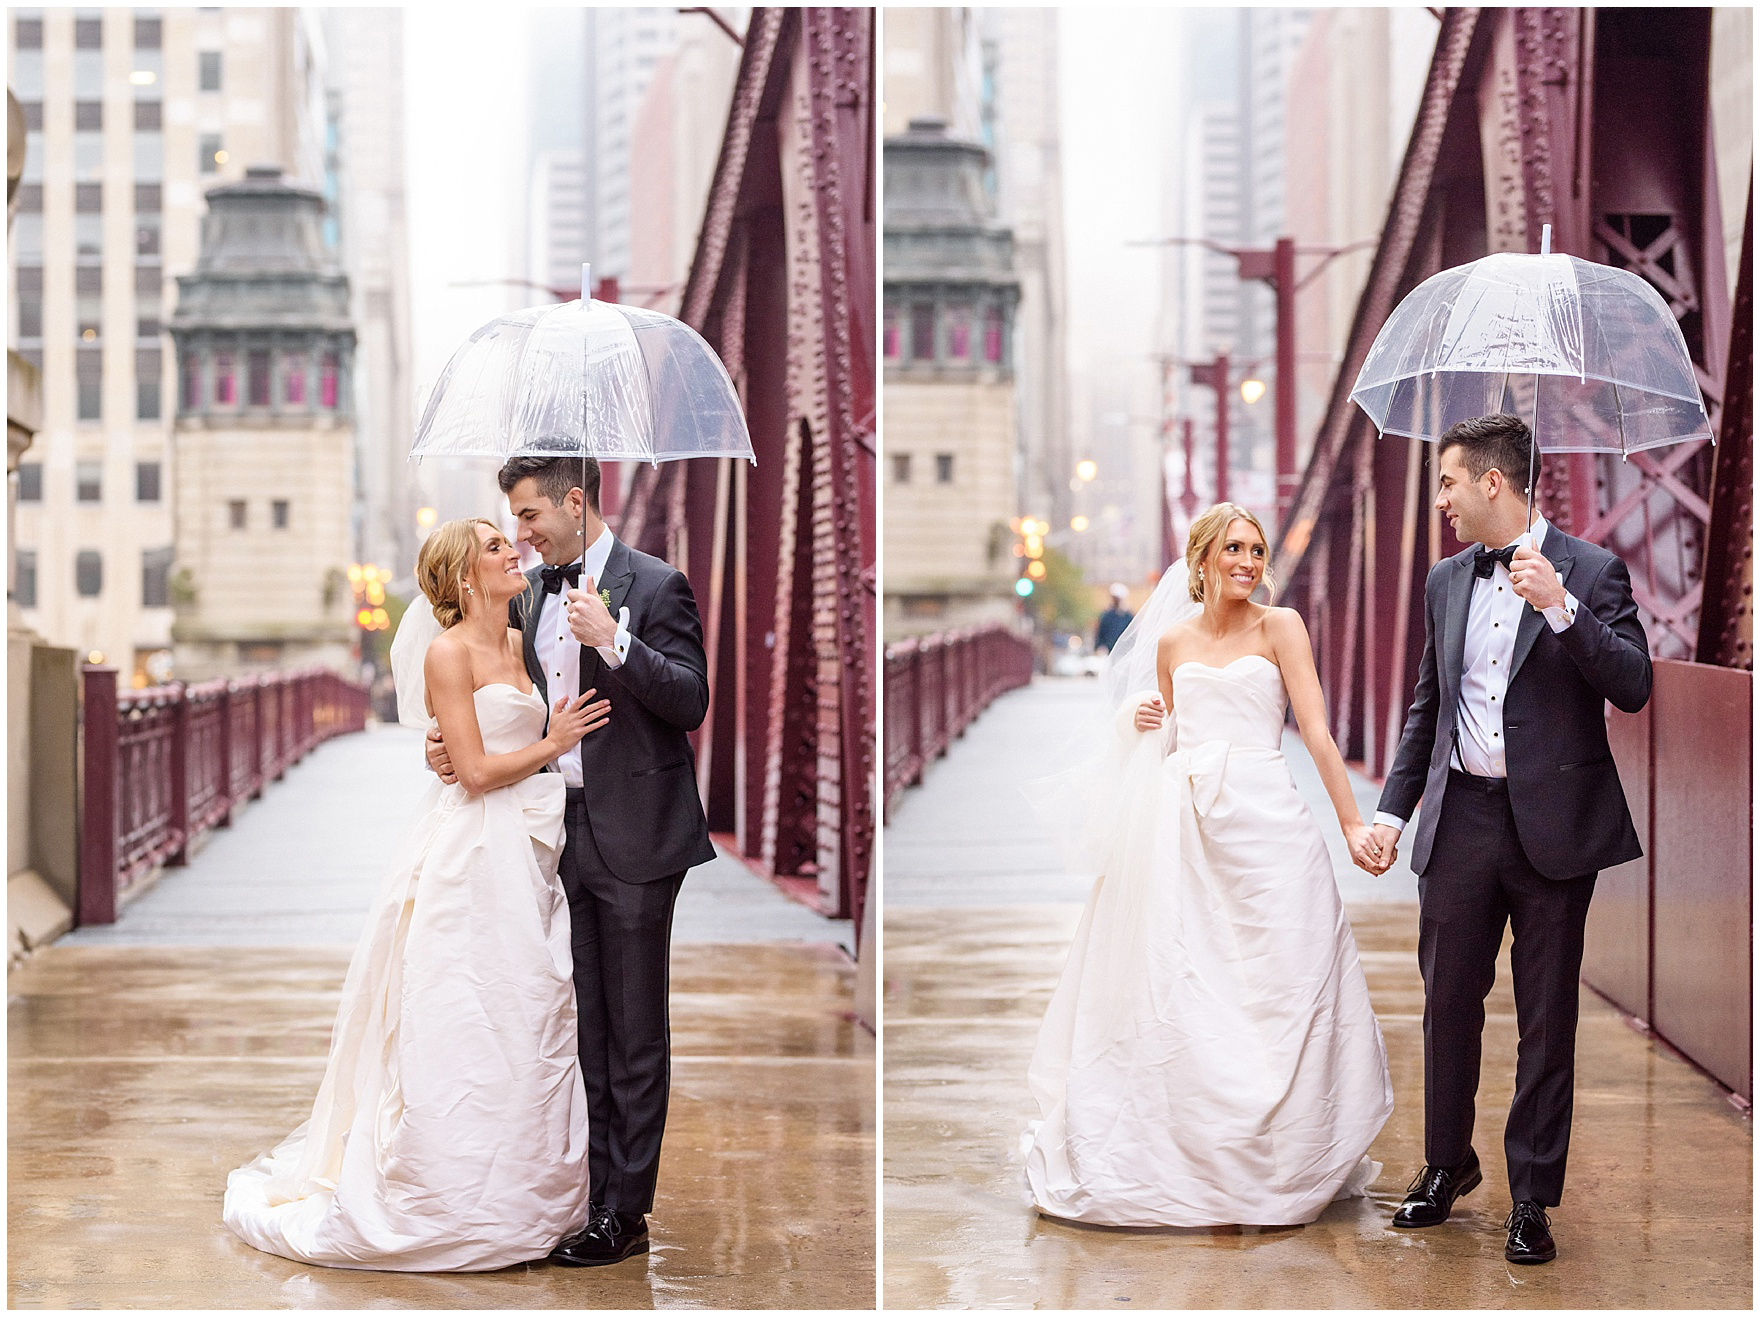 Despite the rain, the bride and groom smile and laugh as they walk on the Clark Street bridge during a St. Clement Germania Place Chicago wedding.